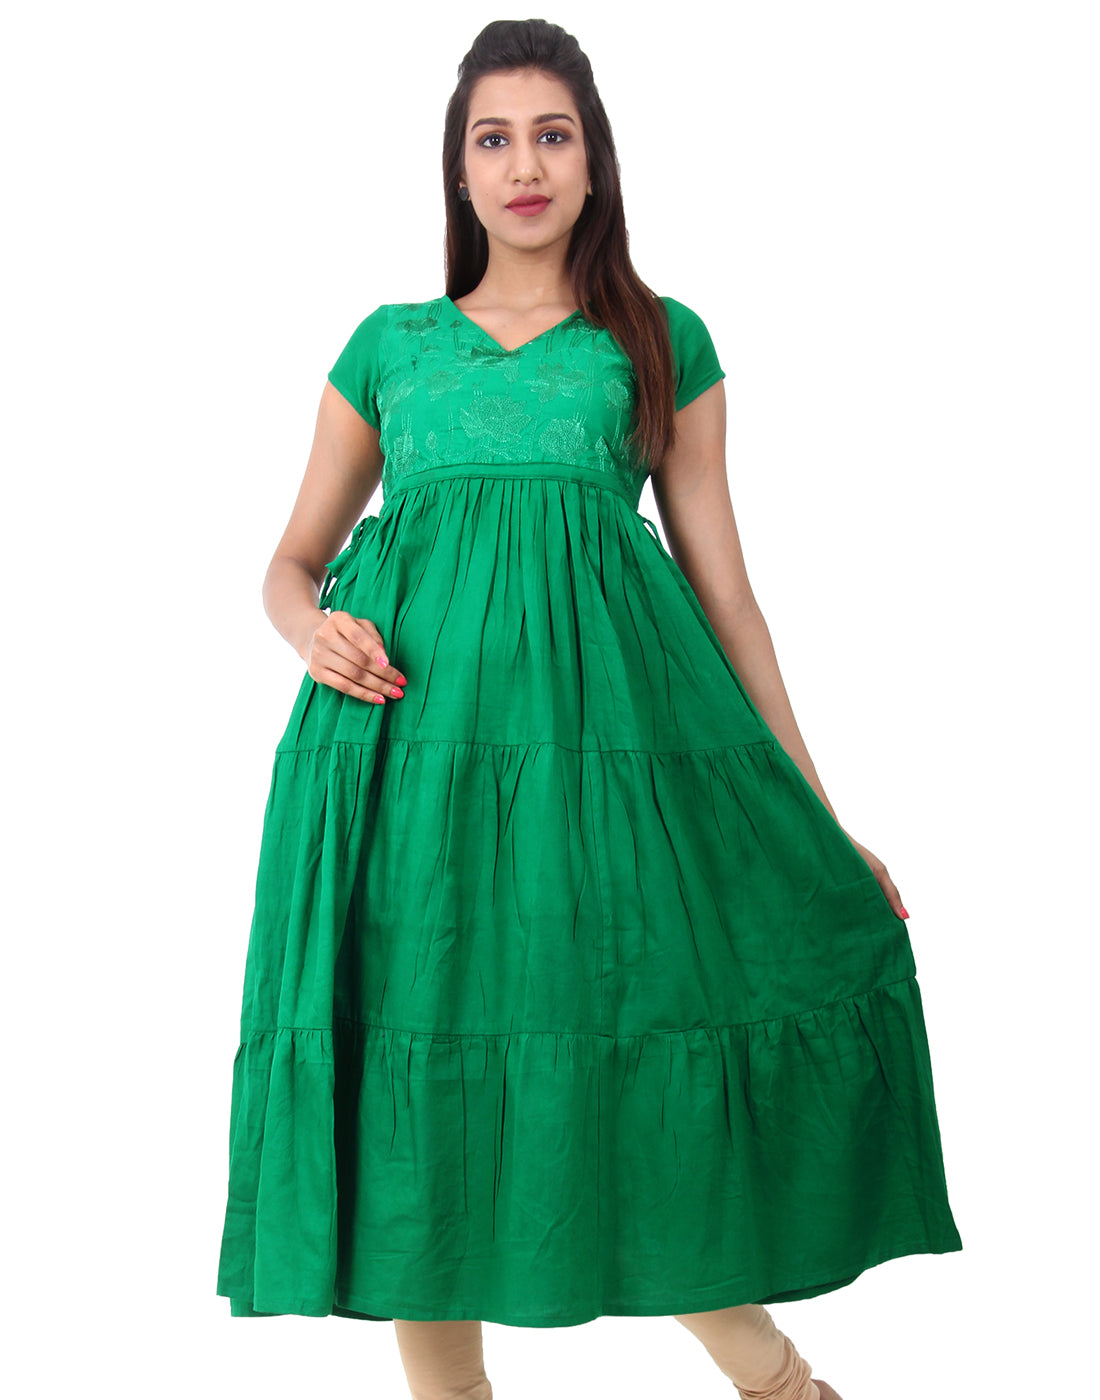 Jelly Bean Embroidered Anarkali With Adjustable Waist Belt